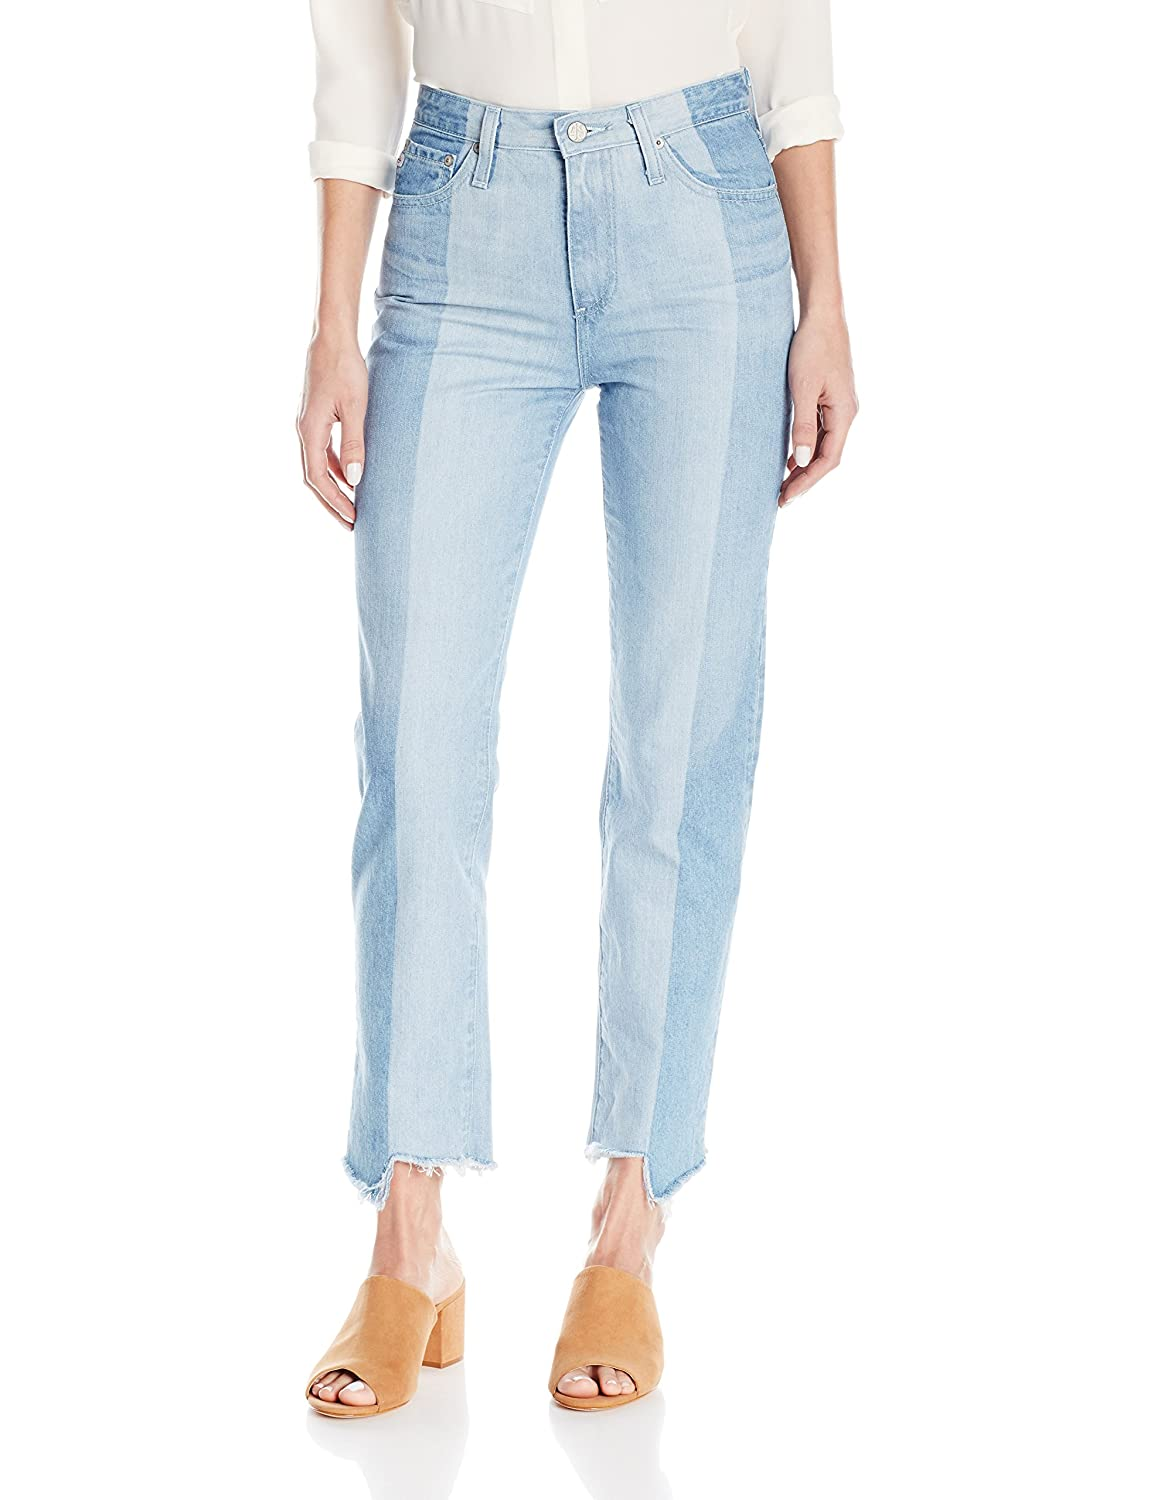 19 Years Splinter AG Adriano goldschmied Womens Phoebe Vintage High Waisted Tapered Leg Jean